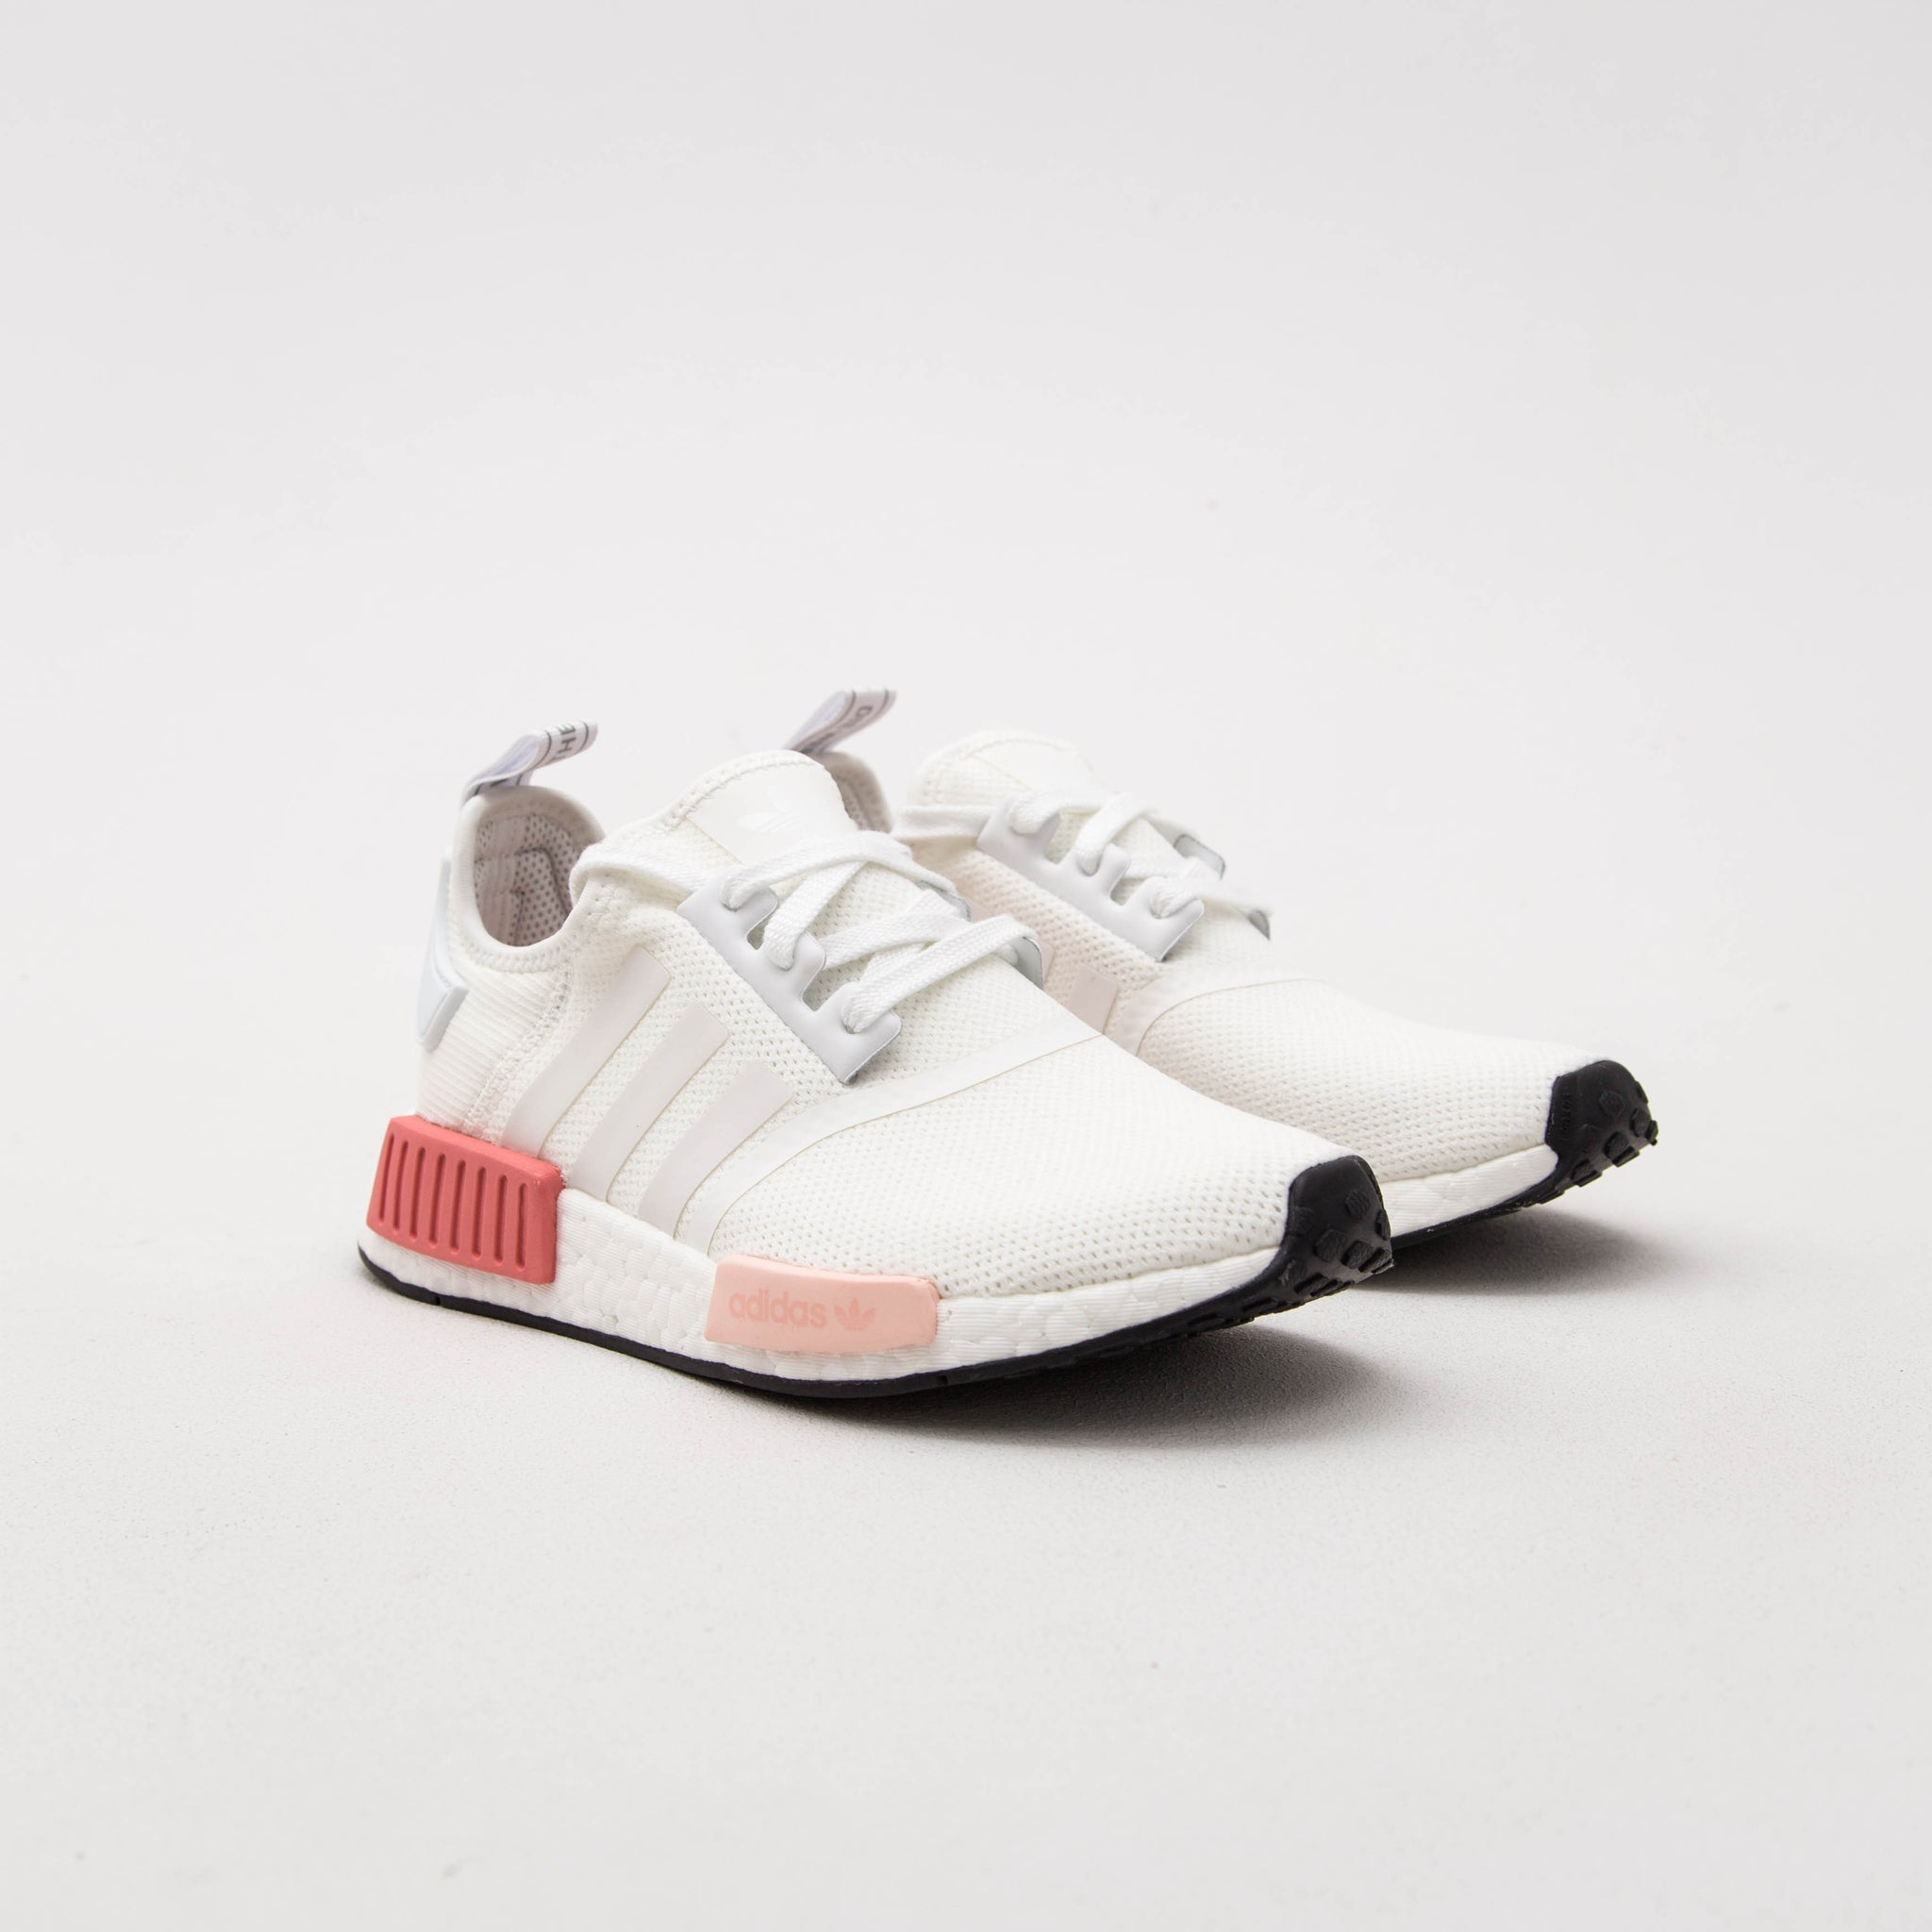 adidas NMD R1 Ladies Sneakers - White BY9952 | AStore